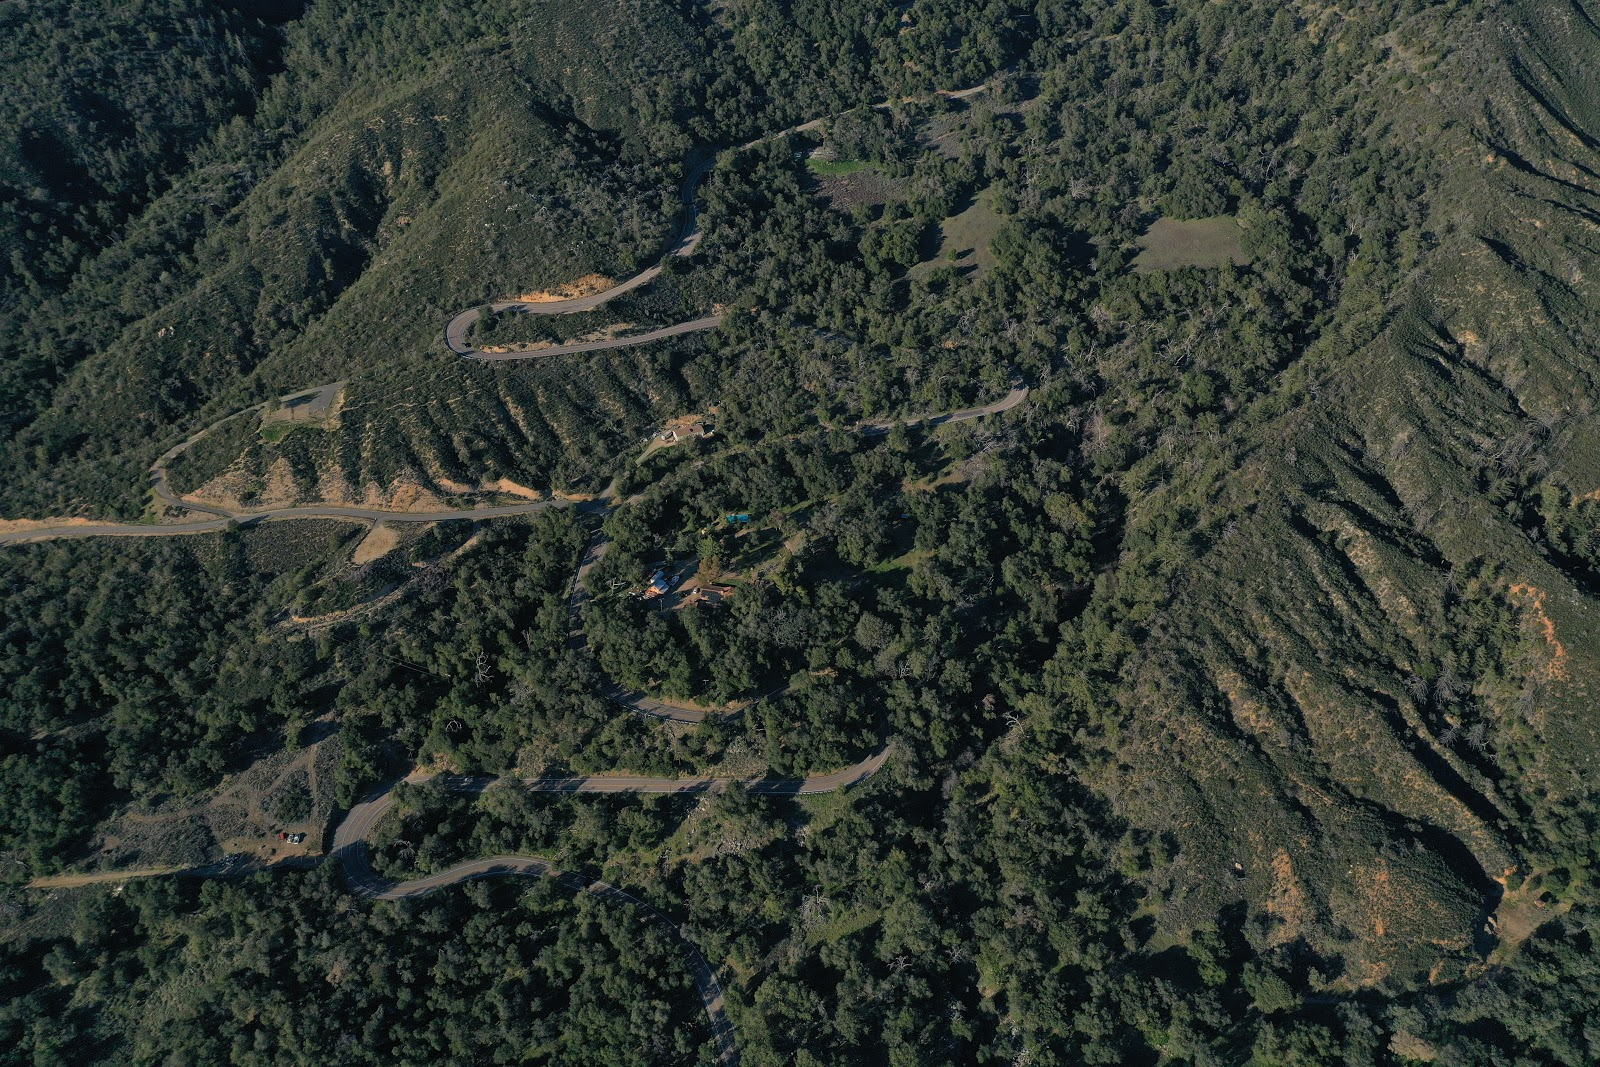 Cycling Palomar Mountain - aerial drone photo of several hairpins